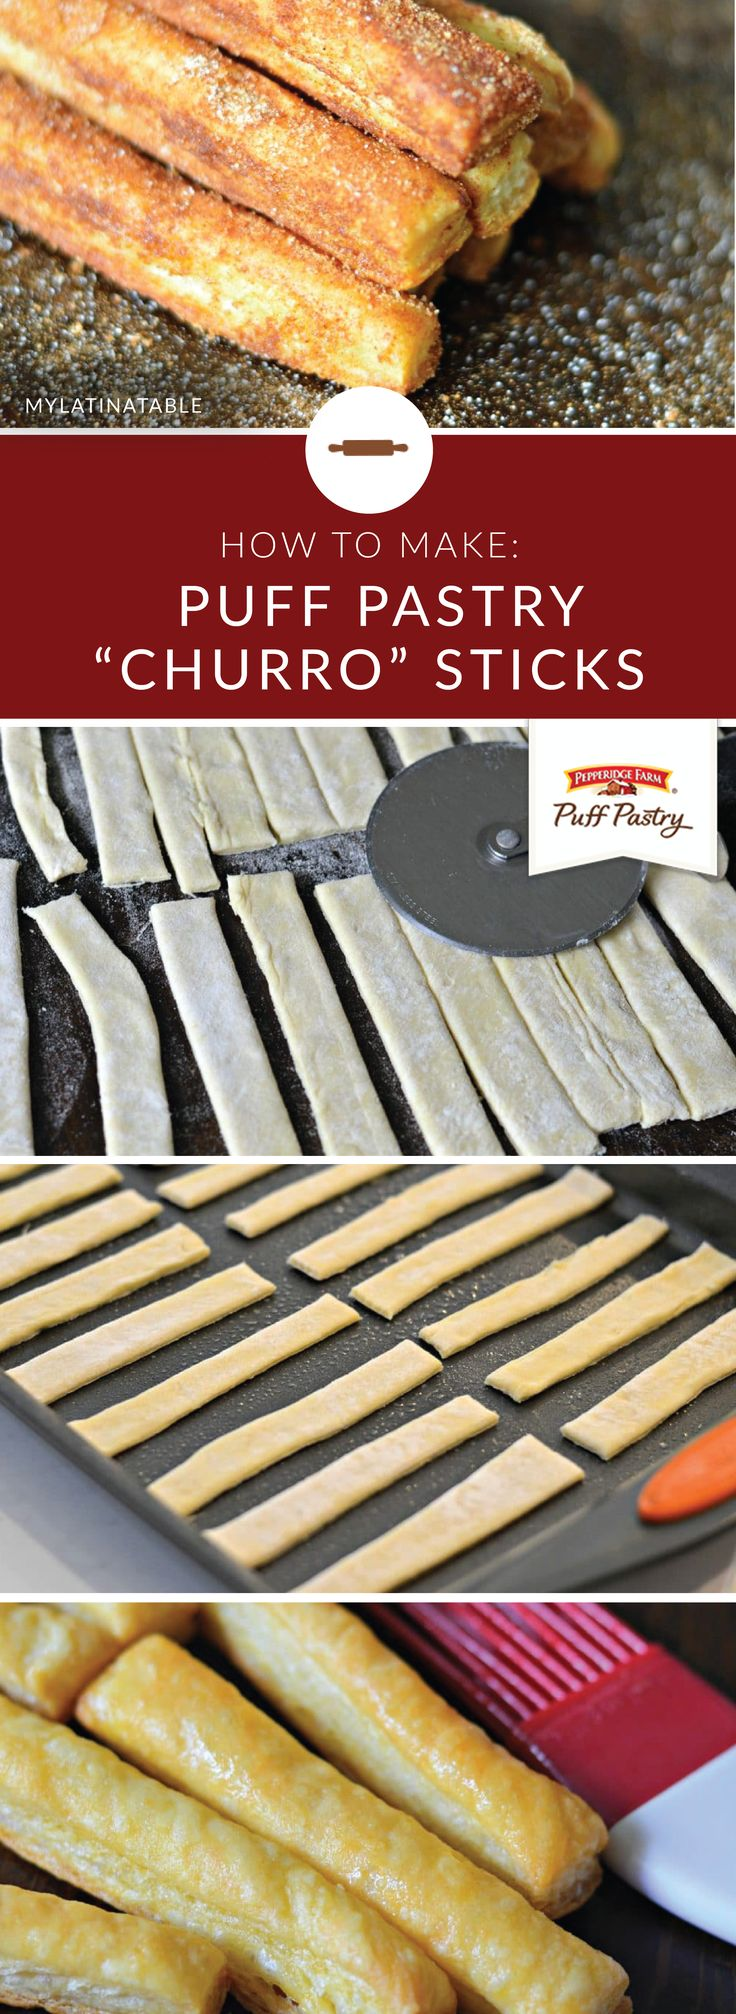 Looking for an easy dessert recipe that you can share with friends and family this holiday season? These Puff Pastry Churro Sticks from Charbel, of My Latina Table, make entertaining effortless. Simple dust Pepperidge Farm® Puff Pastry Sheets with cinnamon and sugar before serving.